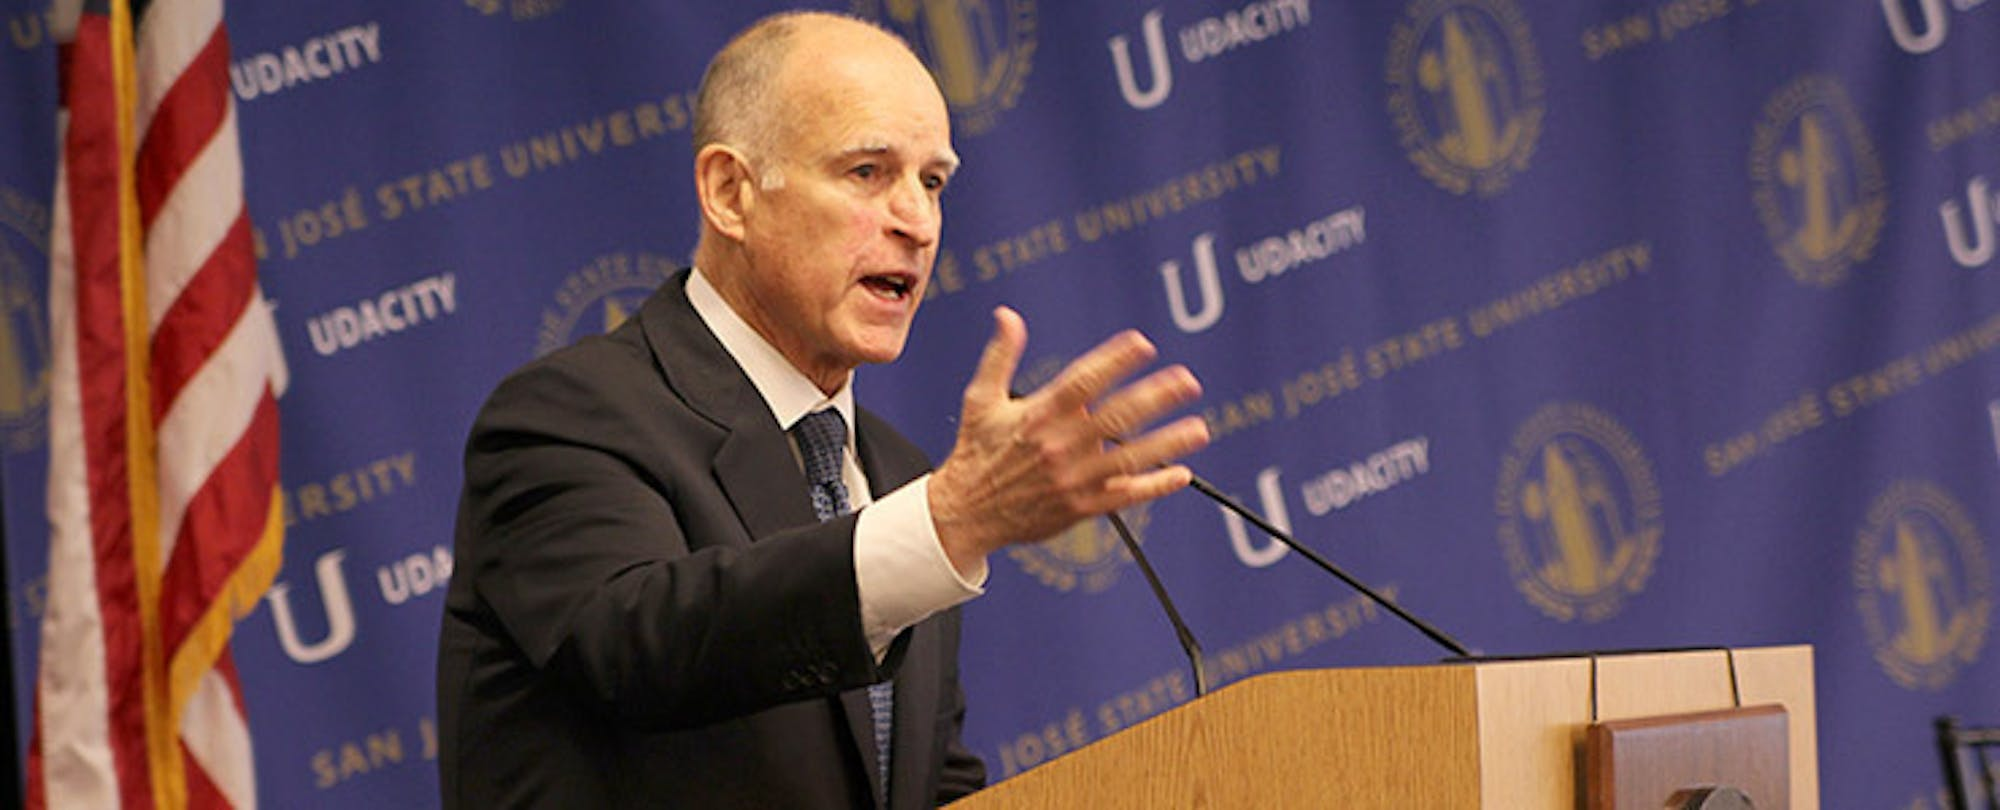 Governor Jerry Brown, Udacity Announce Pilot Program for $150 Classes